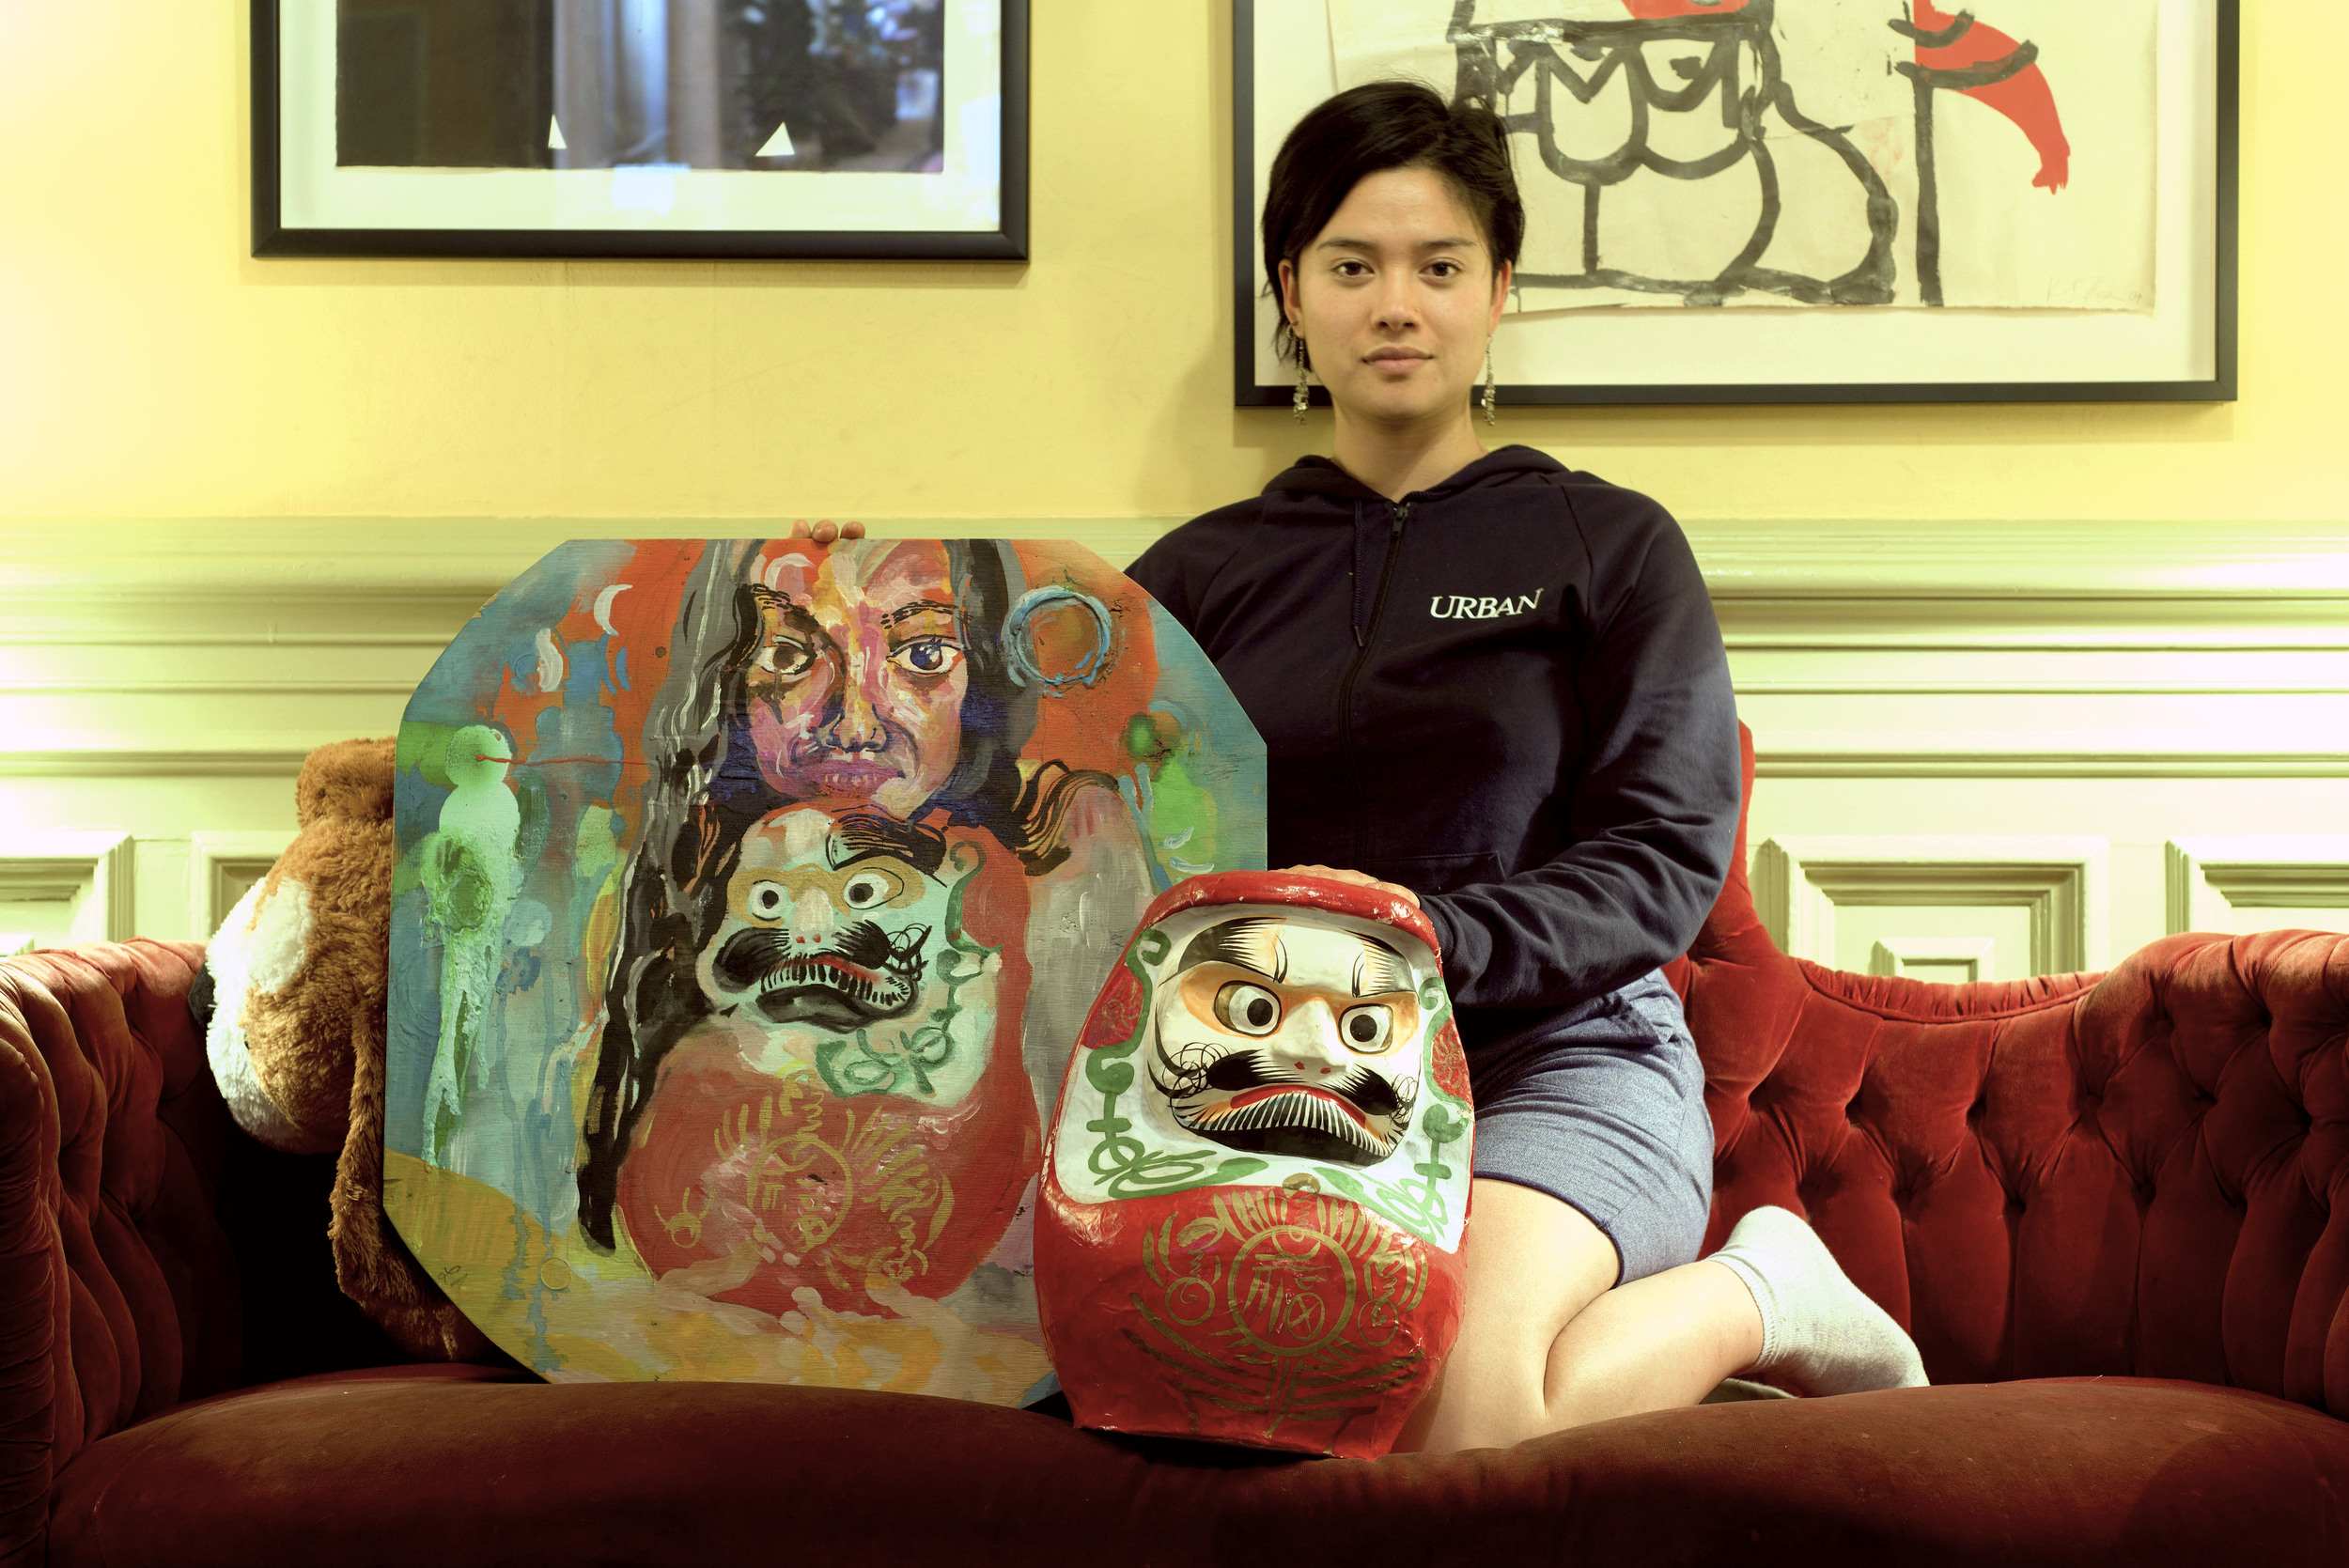 the model Natasha Tamate Weiss posing with her daruma doll and the original copy of the Lemon of Pink (photographs taken by Dat Vu)